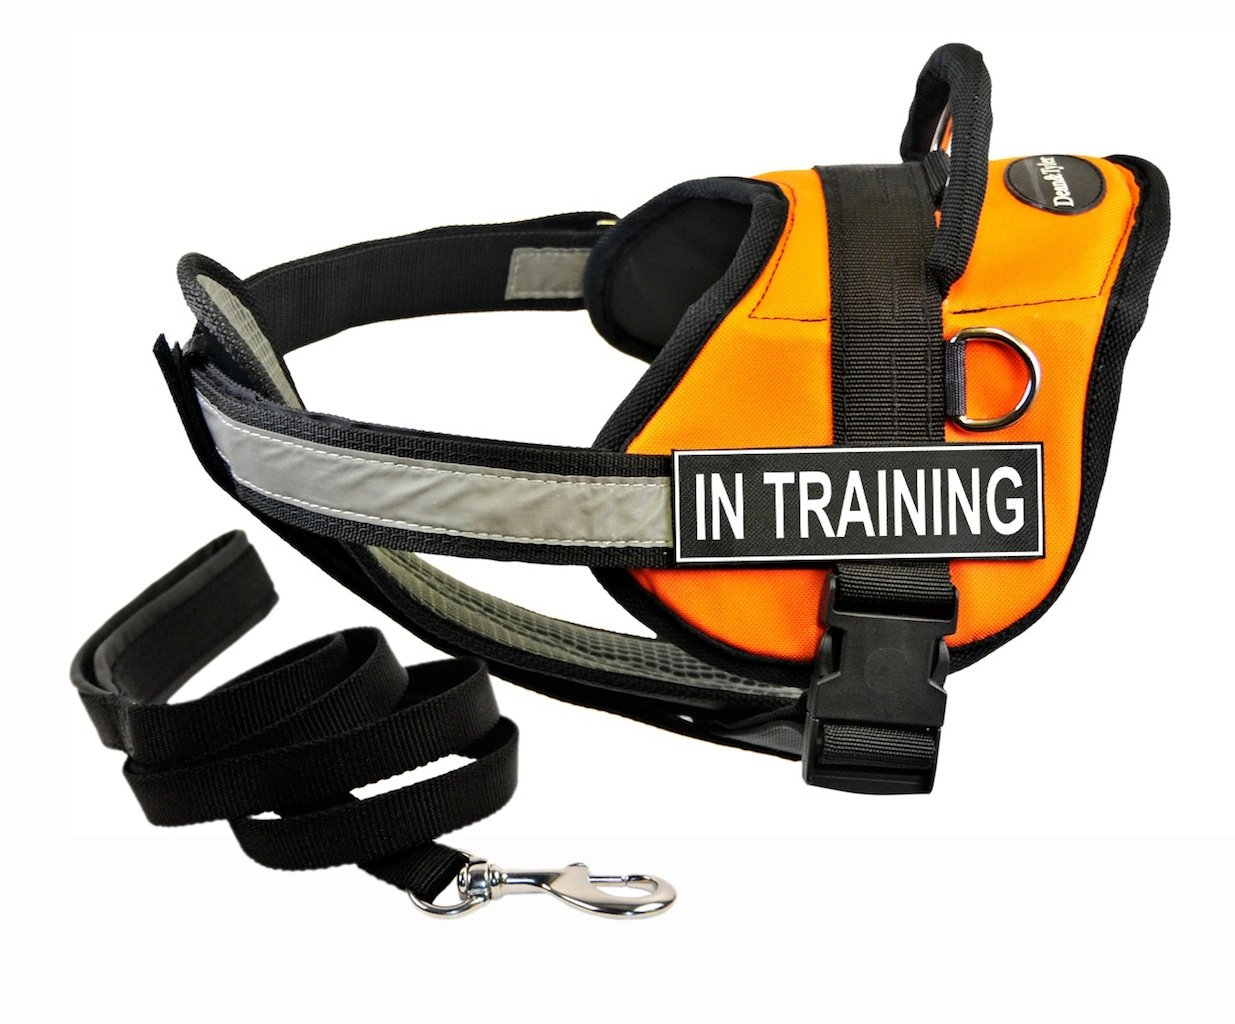 Dean & Tyler's DT Works orange in Training  Harness with Chest Padding, X-Small, and Black 6 ft Padded Puppy Leash.